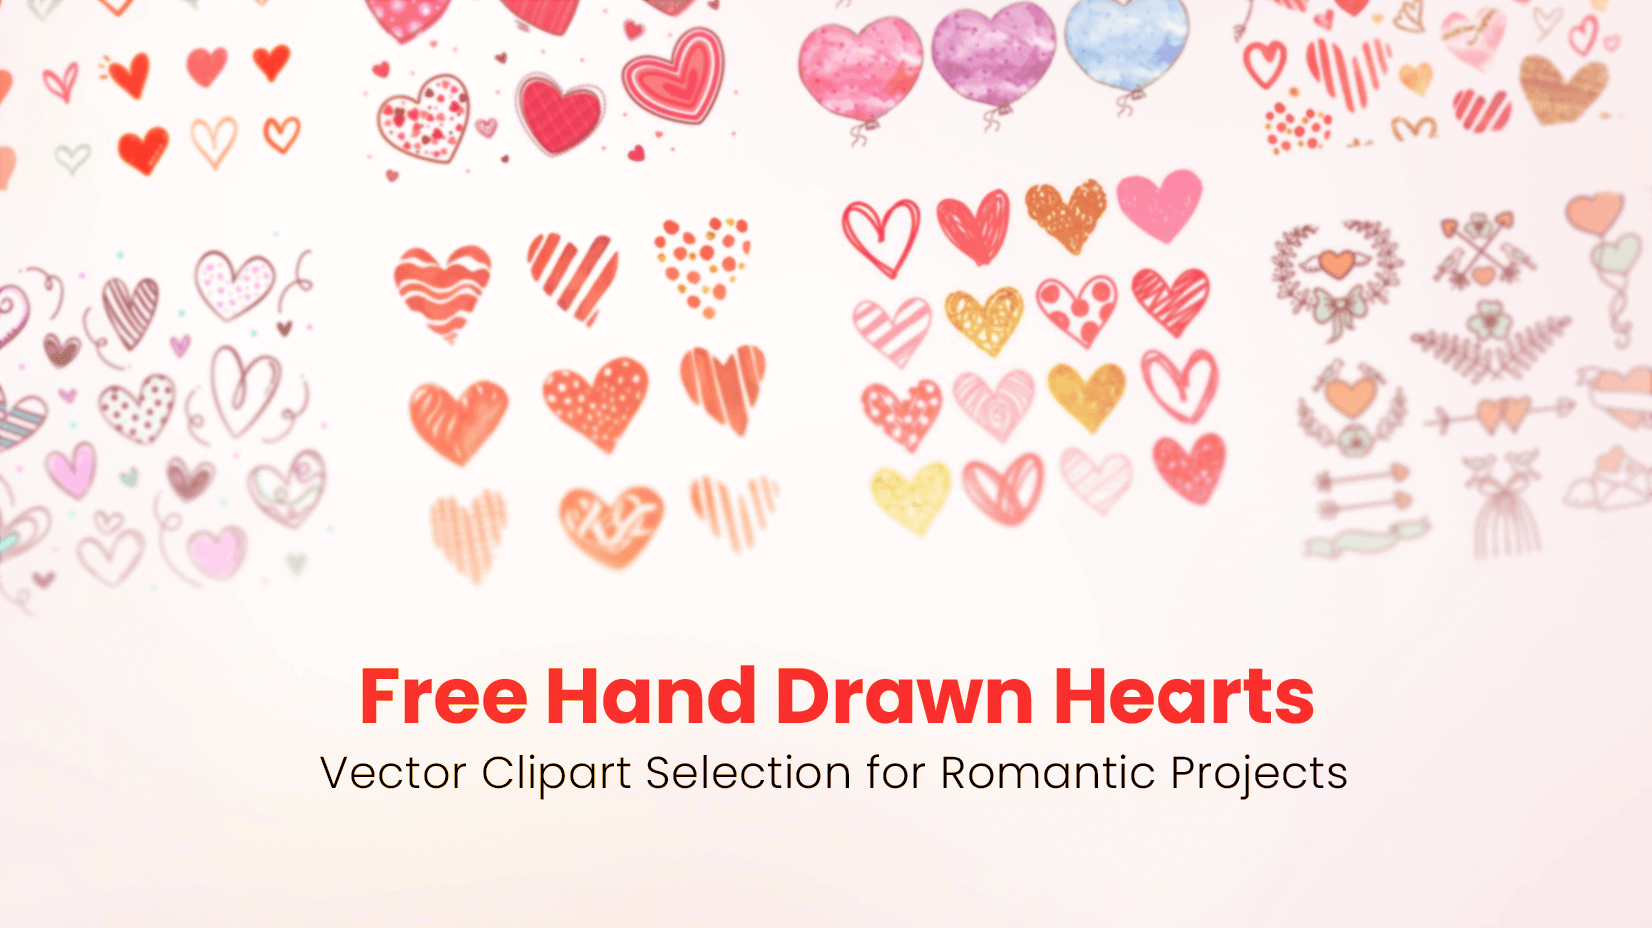 Free Hand Drawn Hearts Vector Clipart Selection For Romantic Projects